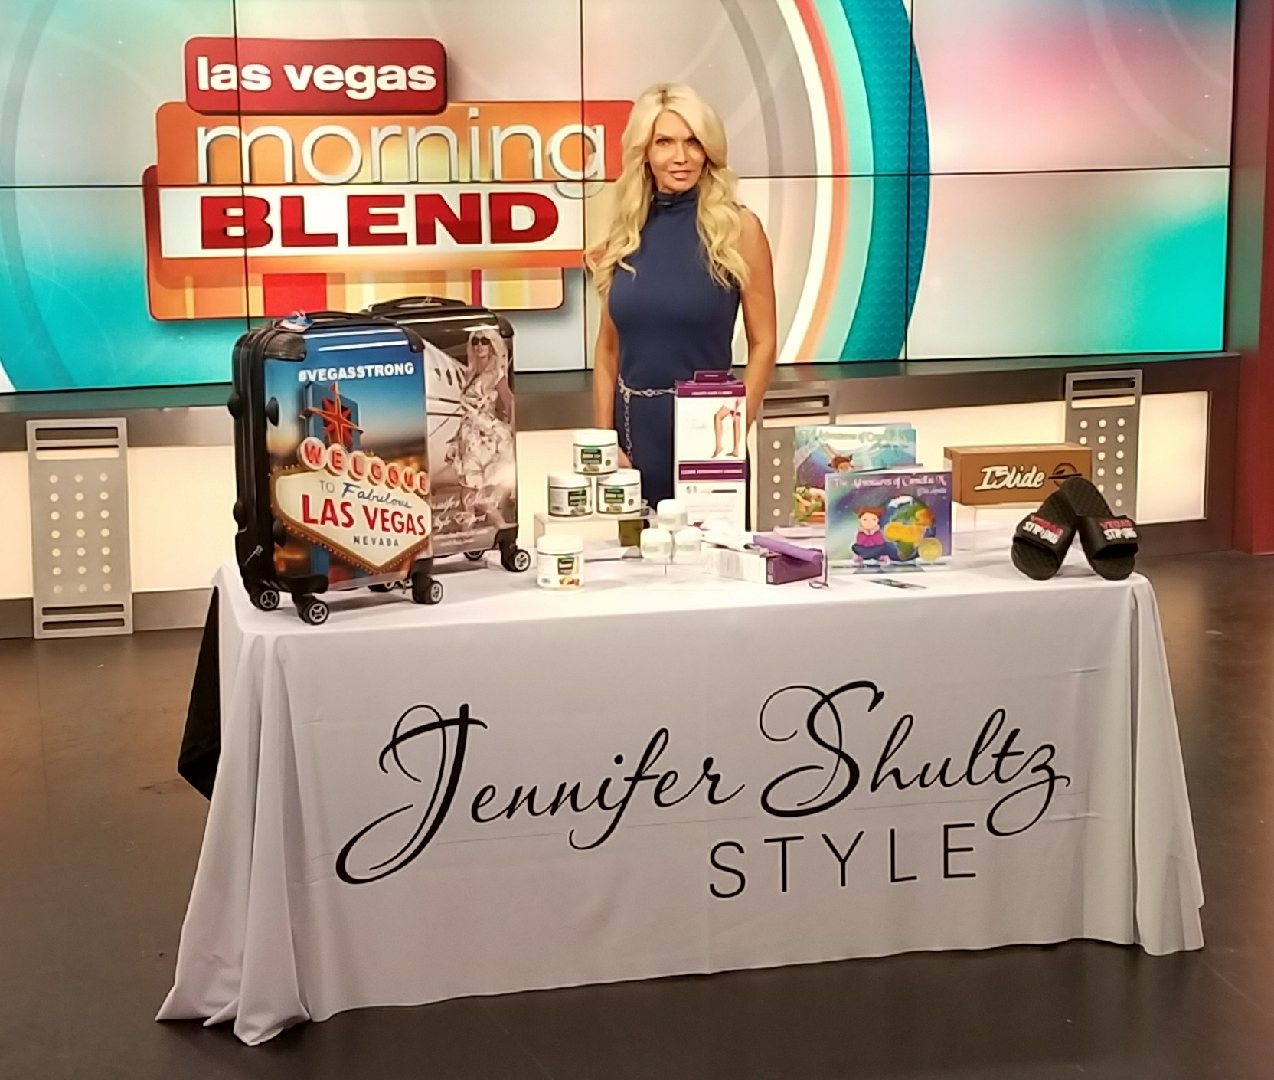 - Camellia N. is making moves! Straight from NYC, she stopped by KTNV The Morning Blend Tuesday, November 8th with Jennifer Shultz!A portion of proceeds made from sales are being donated to the Las Vegas Victims' Fund. I hope you watch this segment and choose books for yourself or as a gift for the holidays! Let's support Las Vegas and help raise funds!